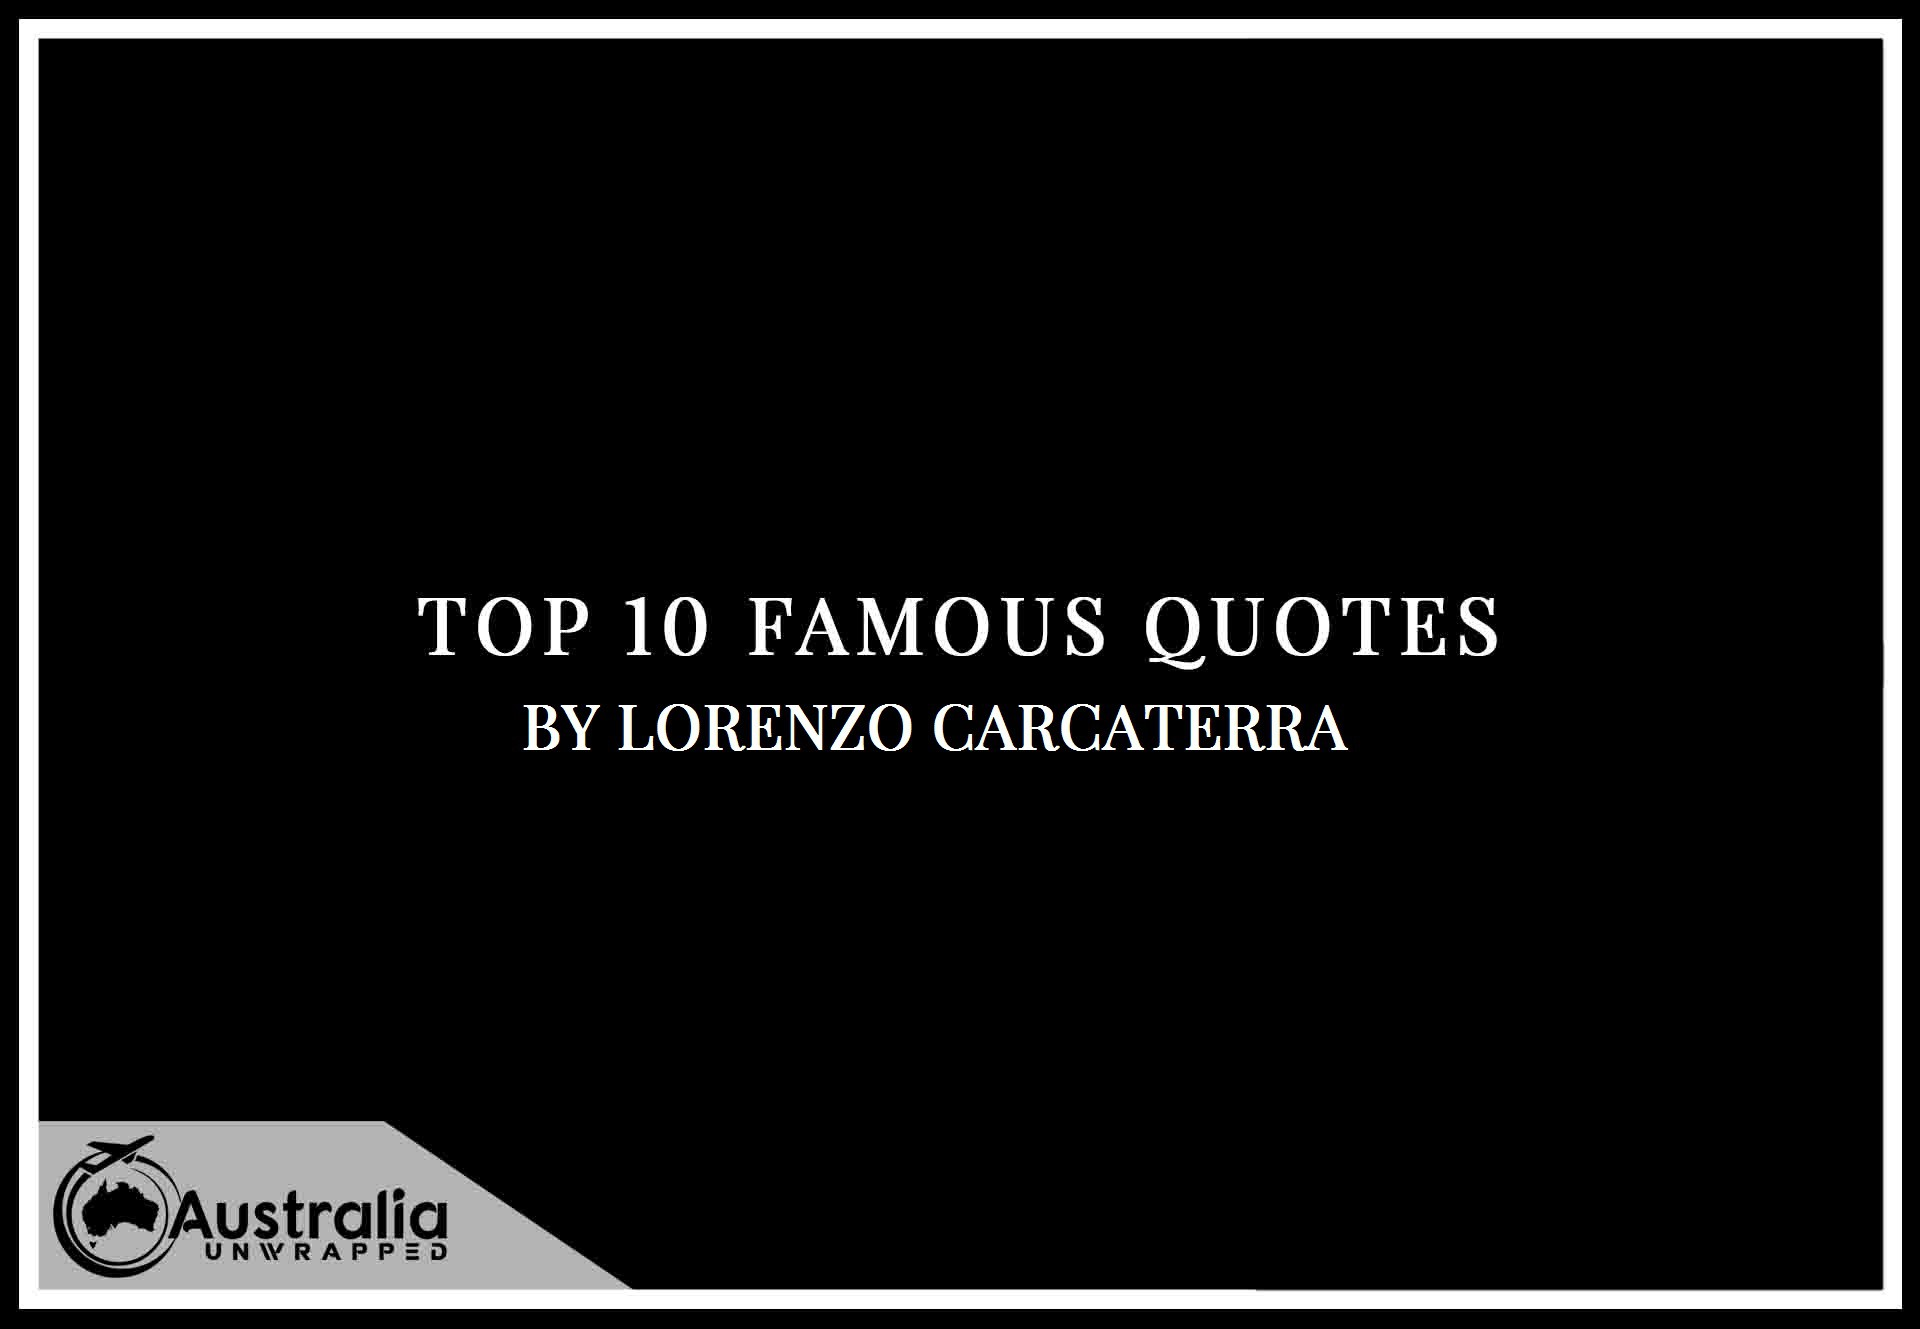 Lorenzo Carcaterra's Top 10 Popular and Famous Quotes